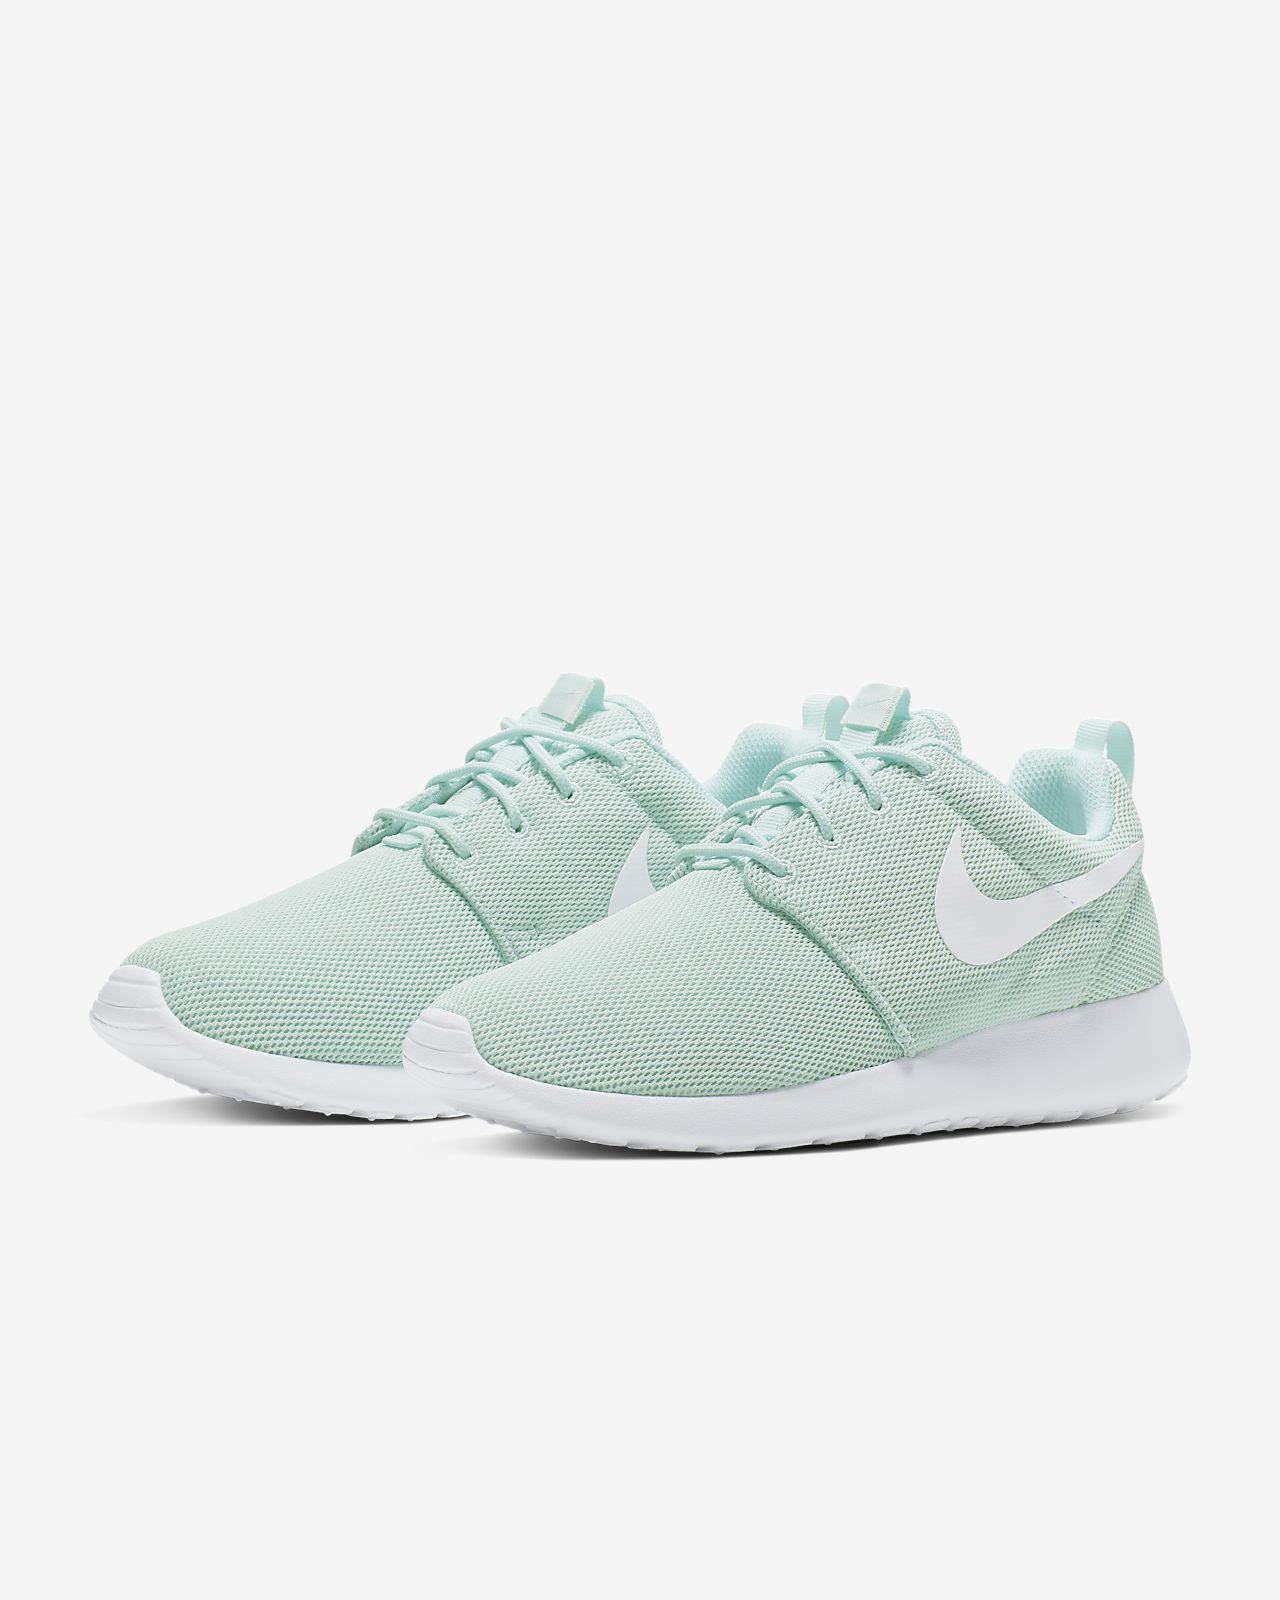 premium selection 5fb61 a799e ... Nike Roshe One Women s Shoe